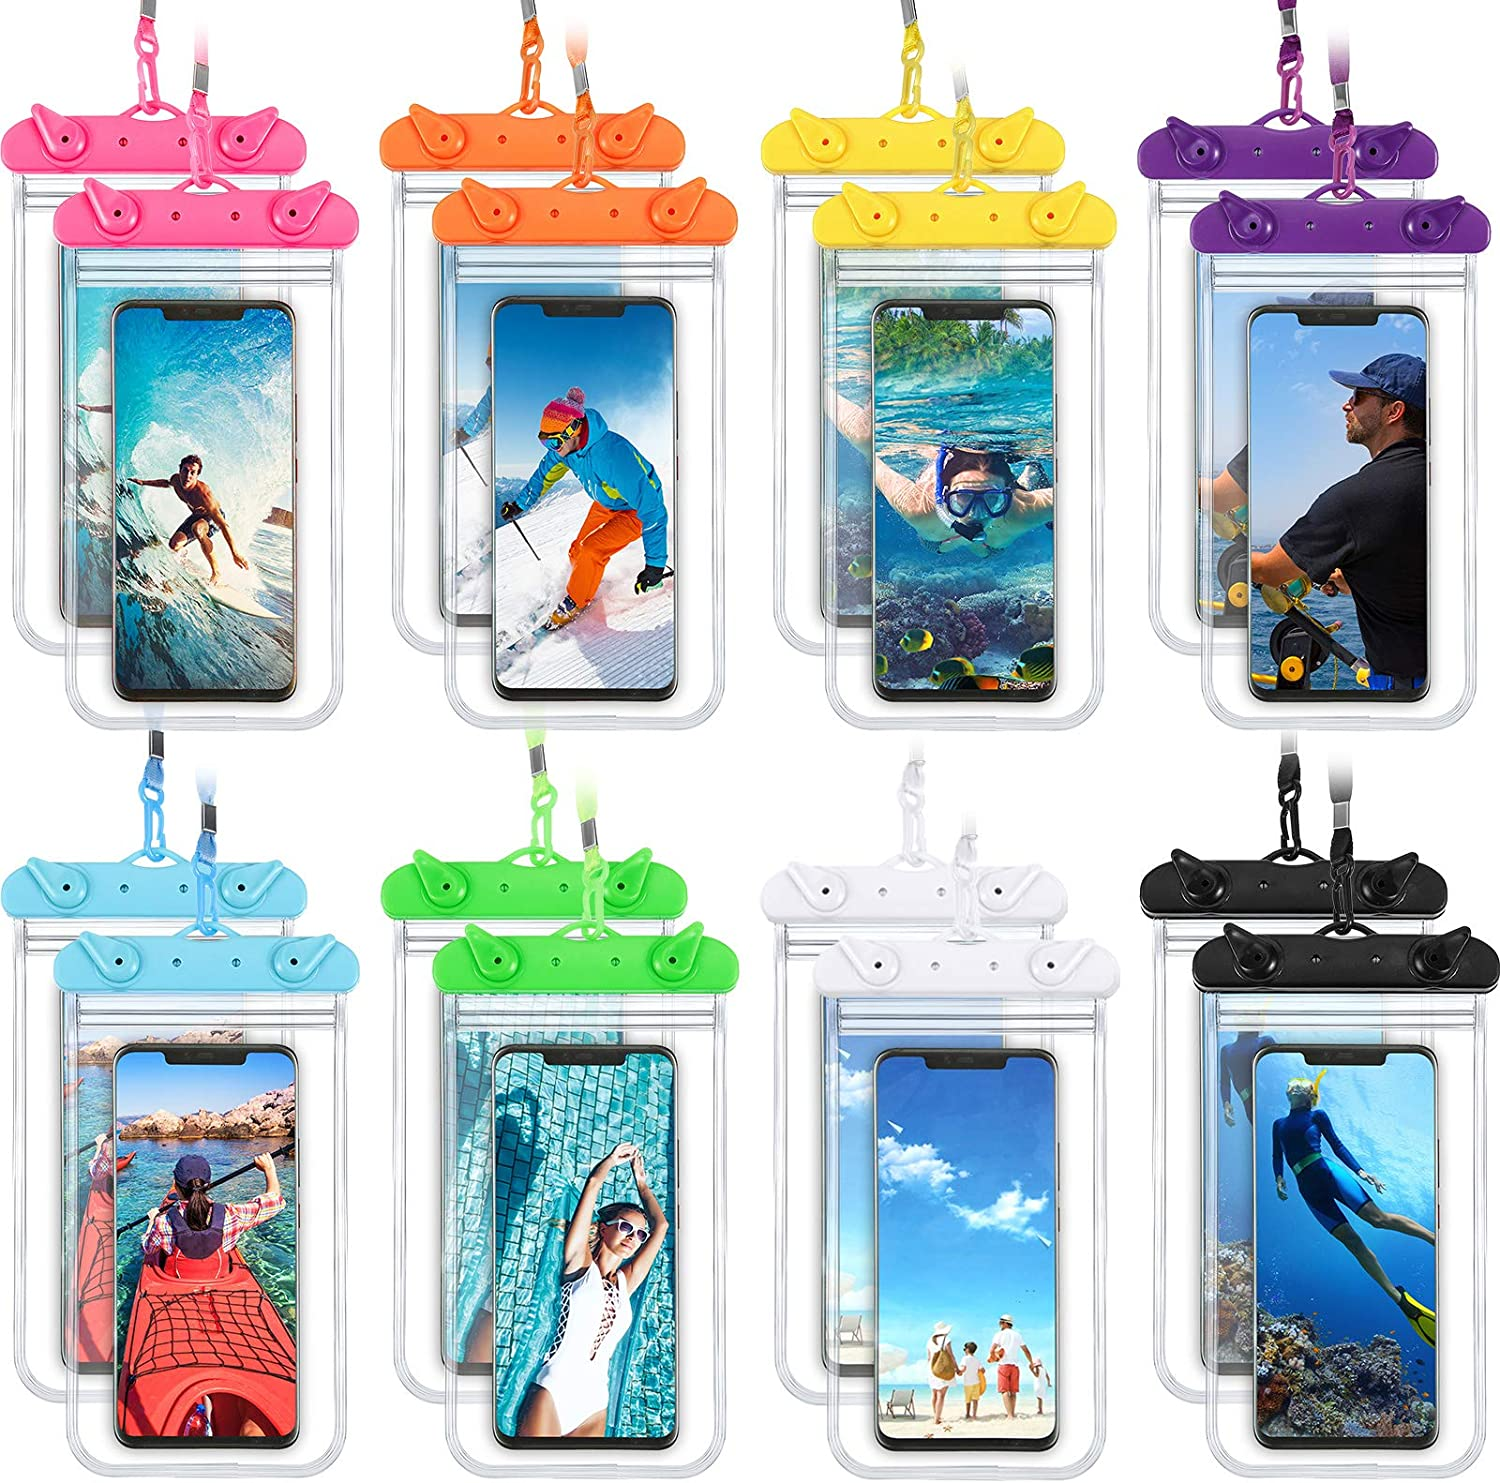 16 Pieces Universal Waterproof Phone Pouch Underwater Clear Phone Case Cellphone Dry Bag Pouch with Lanyard Outdoor Beach Swimming Snorkeling for Smartphone up to 6.9 Inch